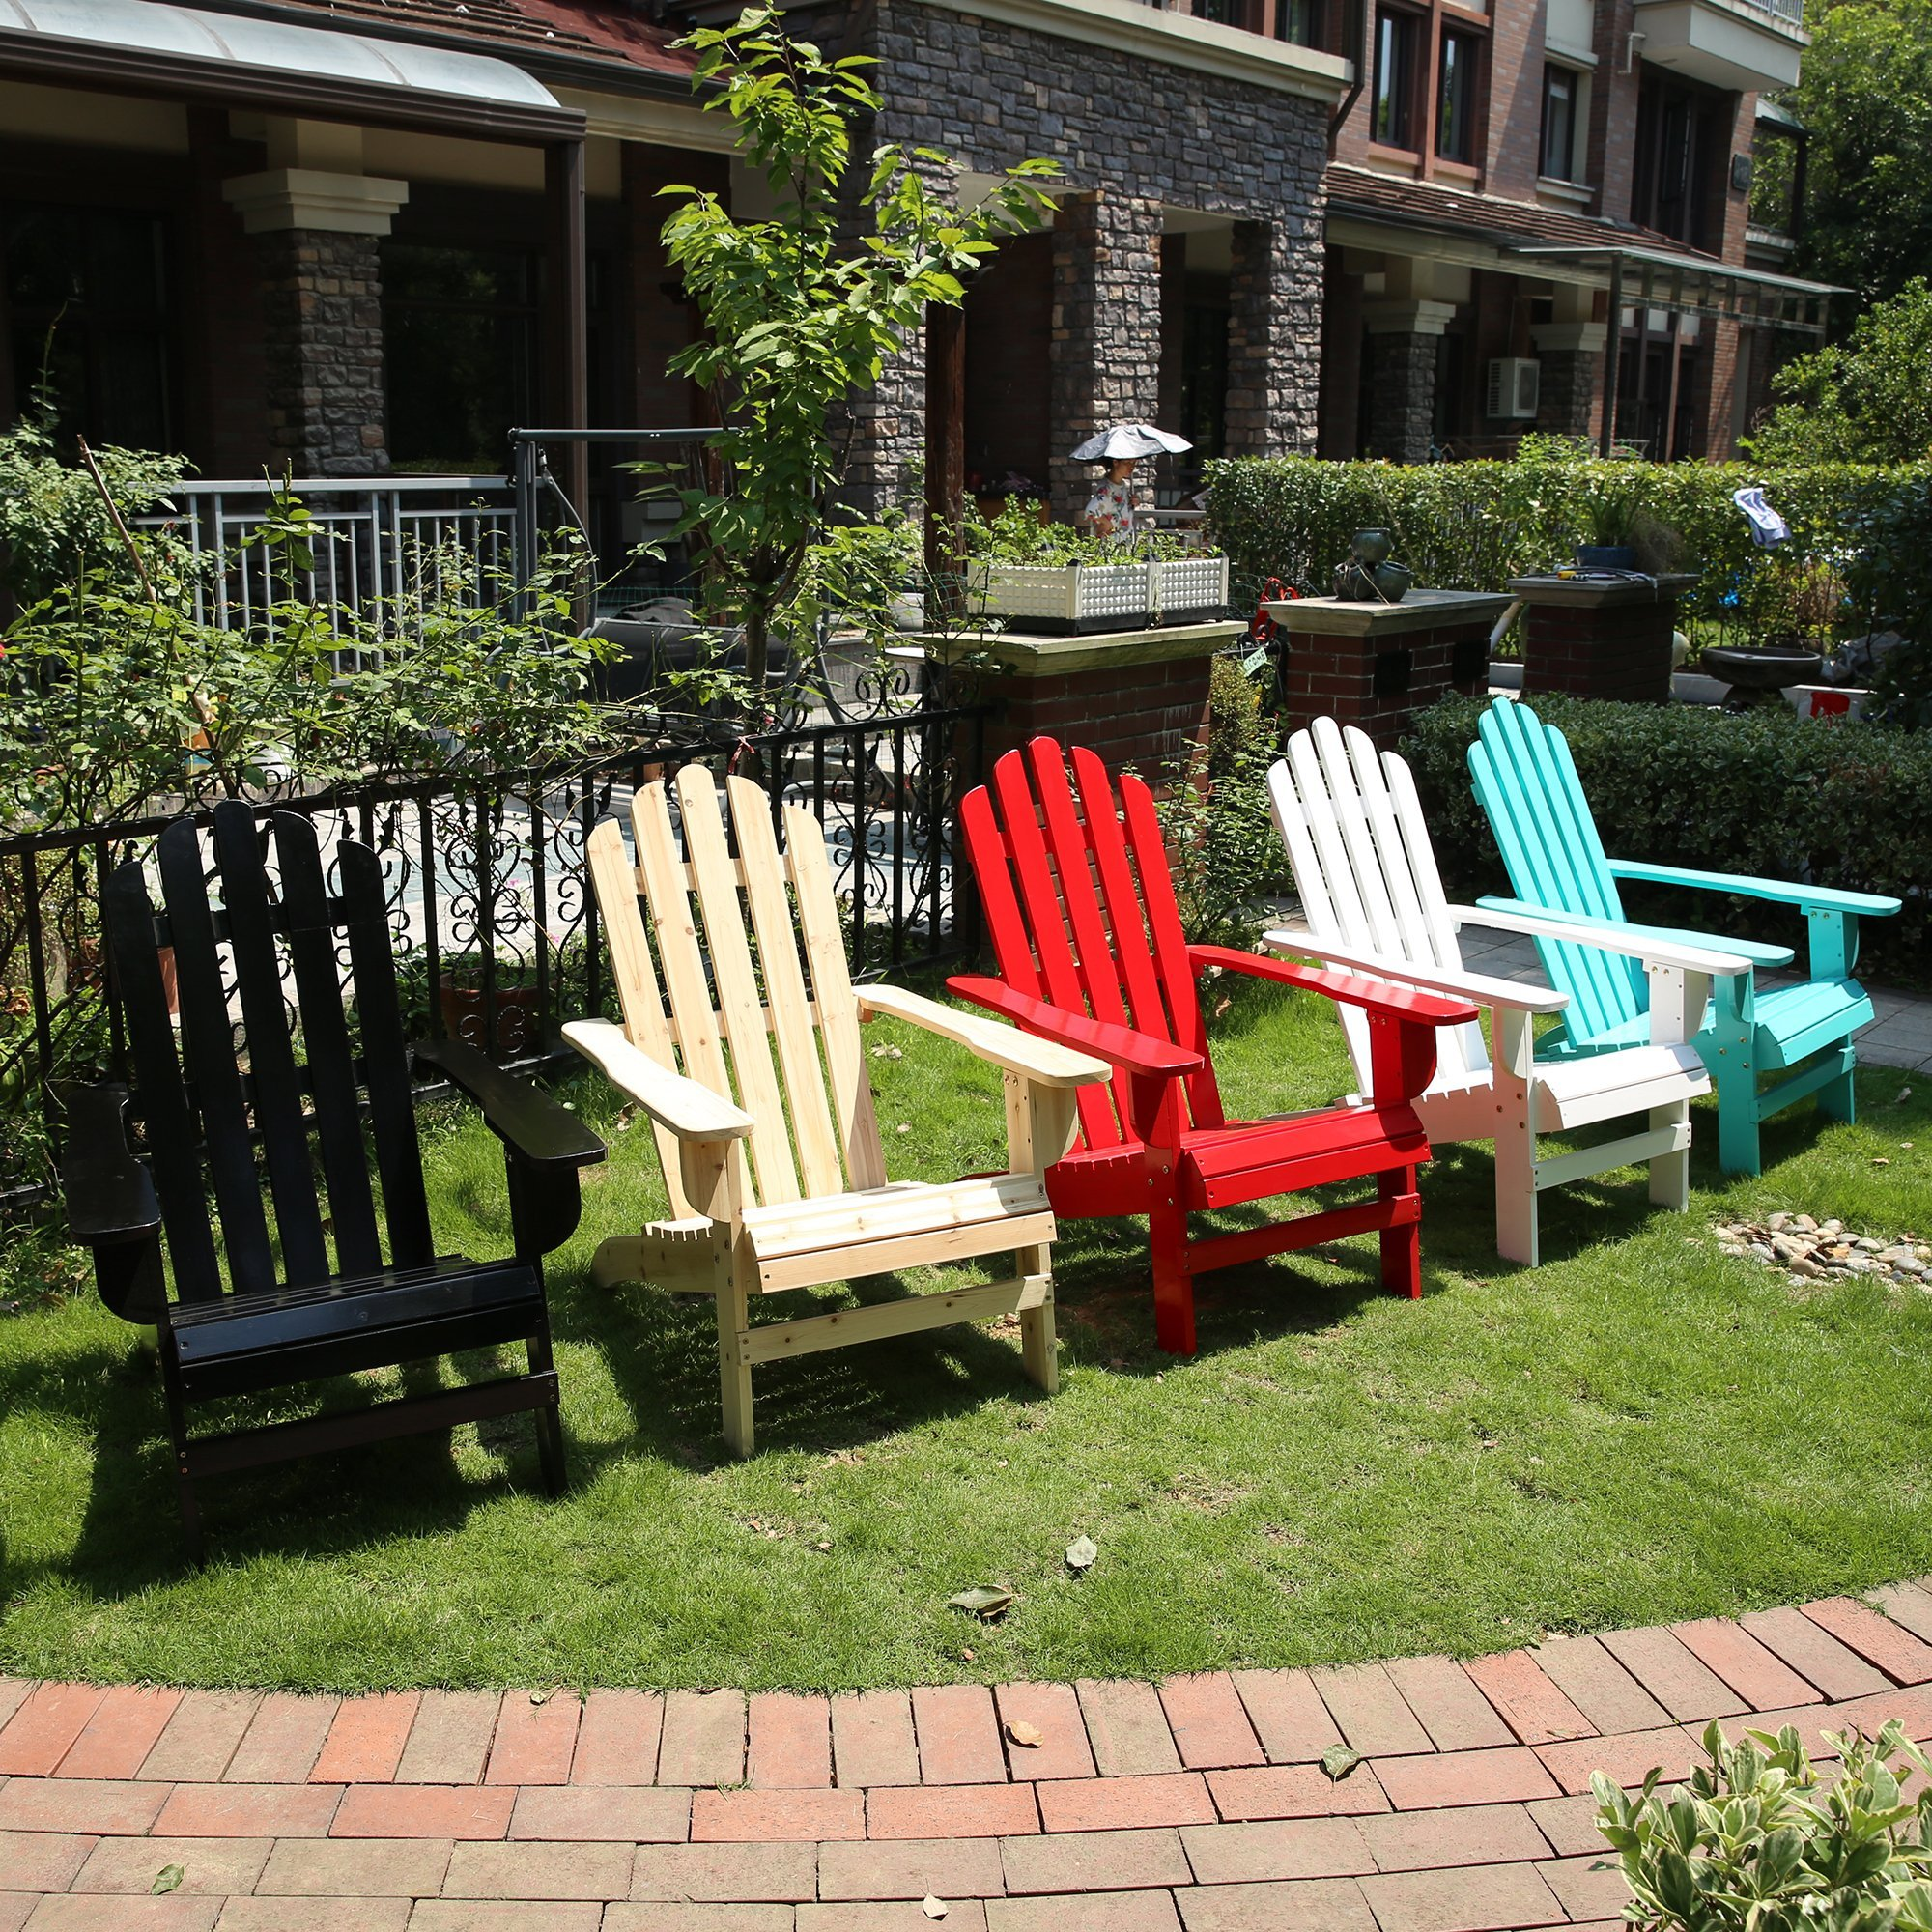 Azbro Outdoor Wooden Fashion Adirondack chair/Muskoka Chairs Patio Deck Garden Furniture,Turquoise by Azbro (Image #7)